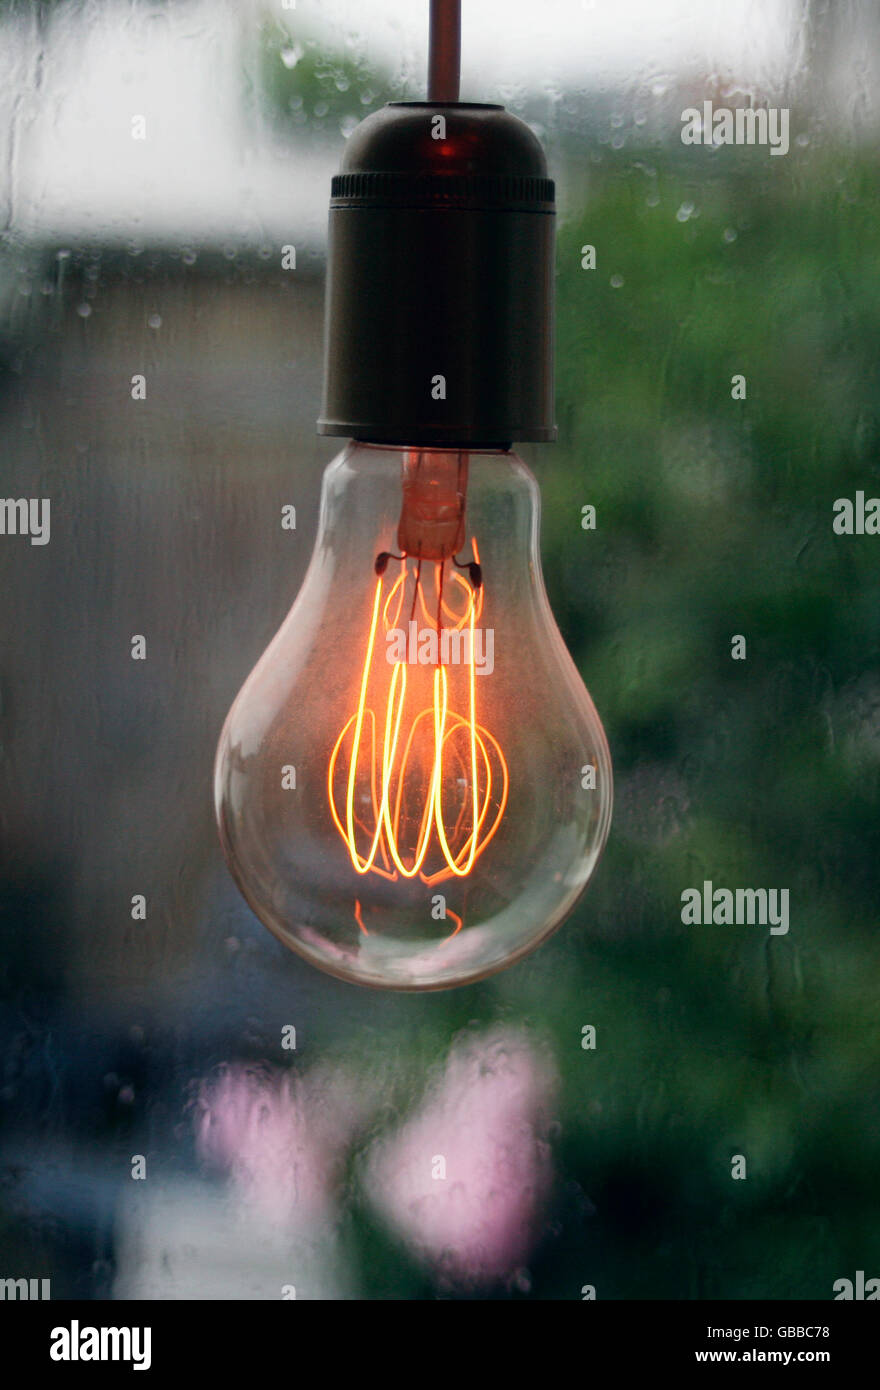 Incandescent lamp filaments - Stock Image